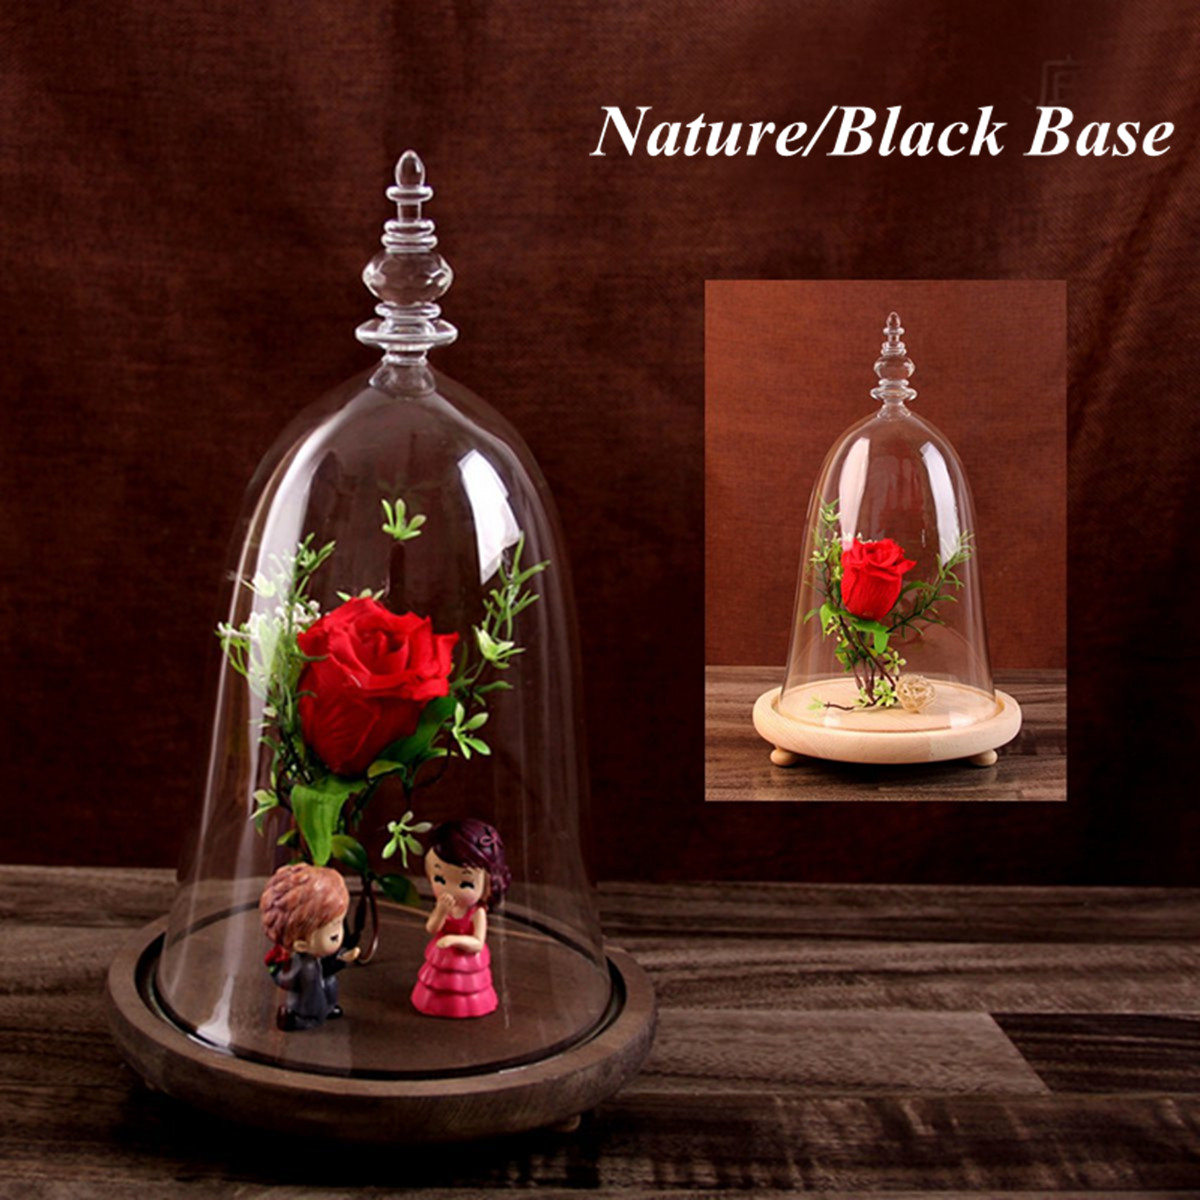 Moaere Decorative Clear Glass Cloche Bell Jar Display Case with Rustic Bamboo Base Tabletop Centerpiece Dome H10 Inches